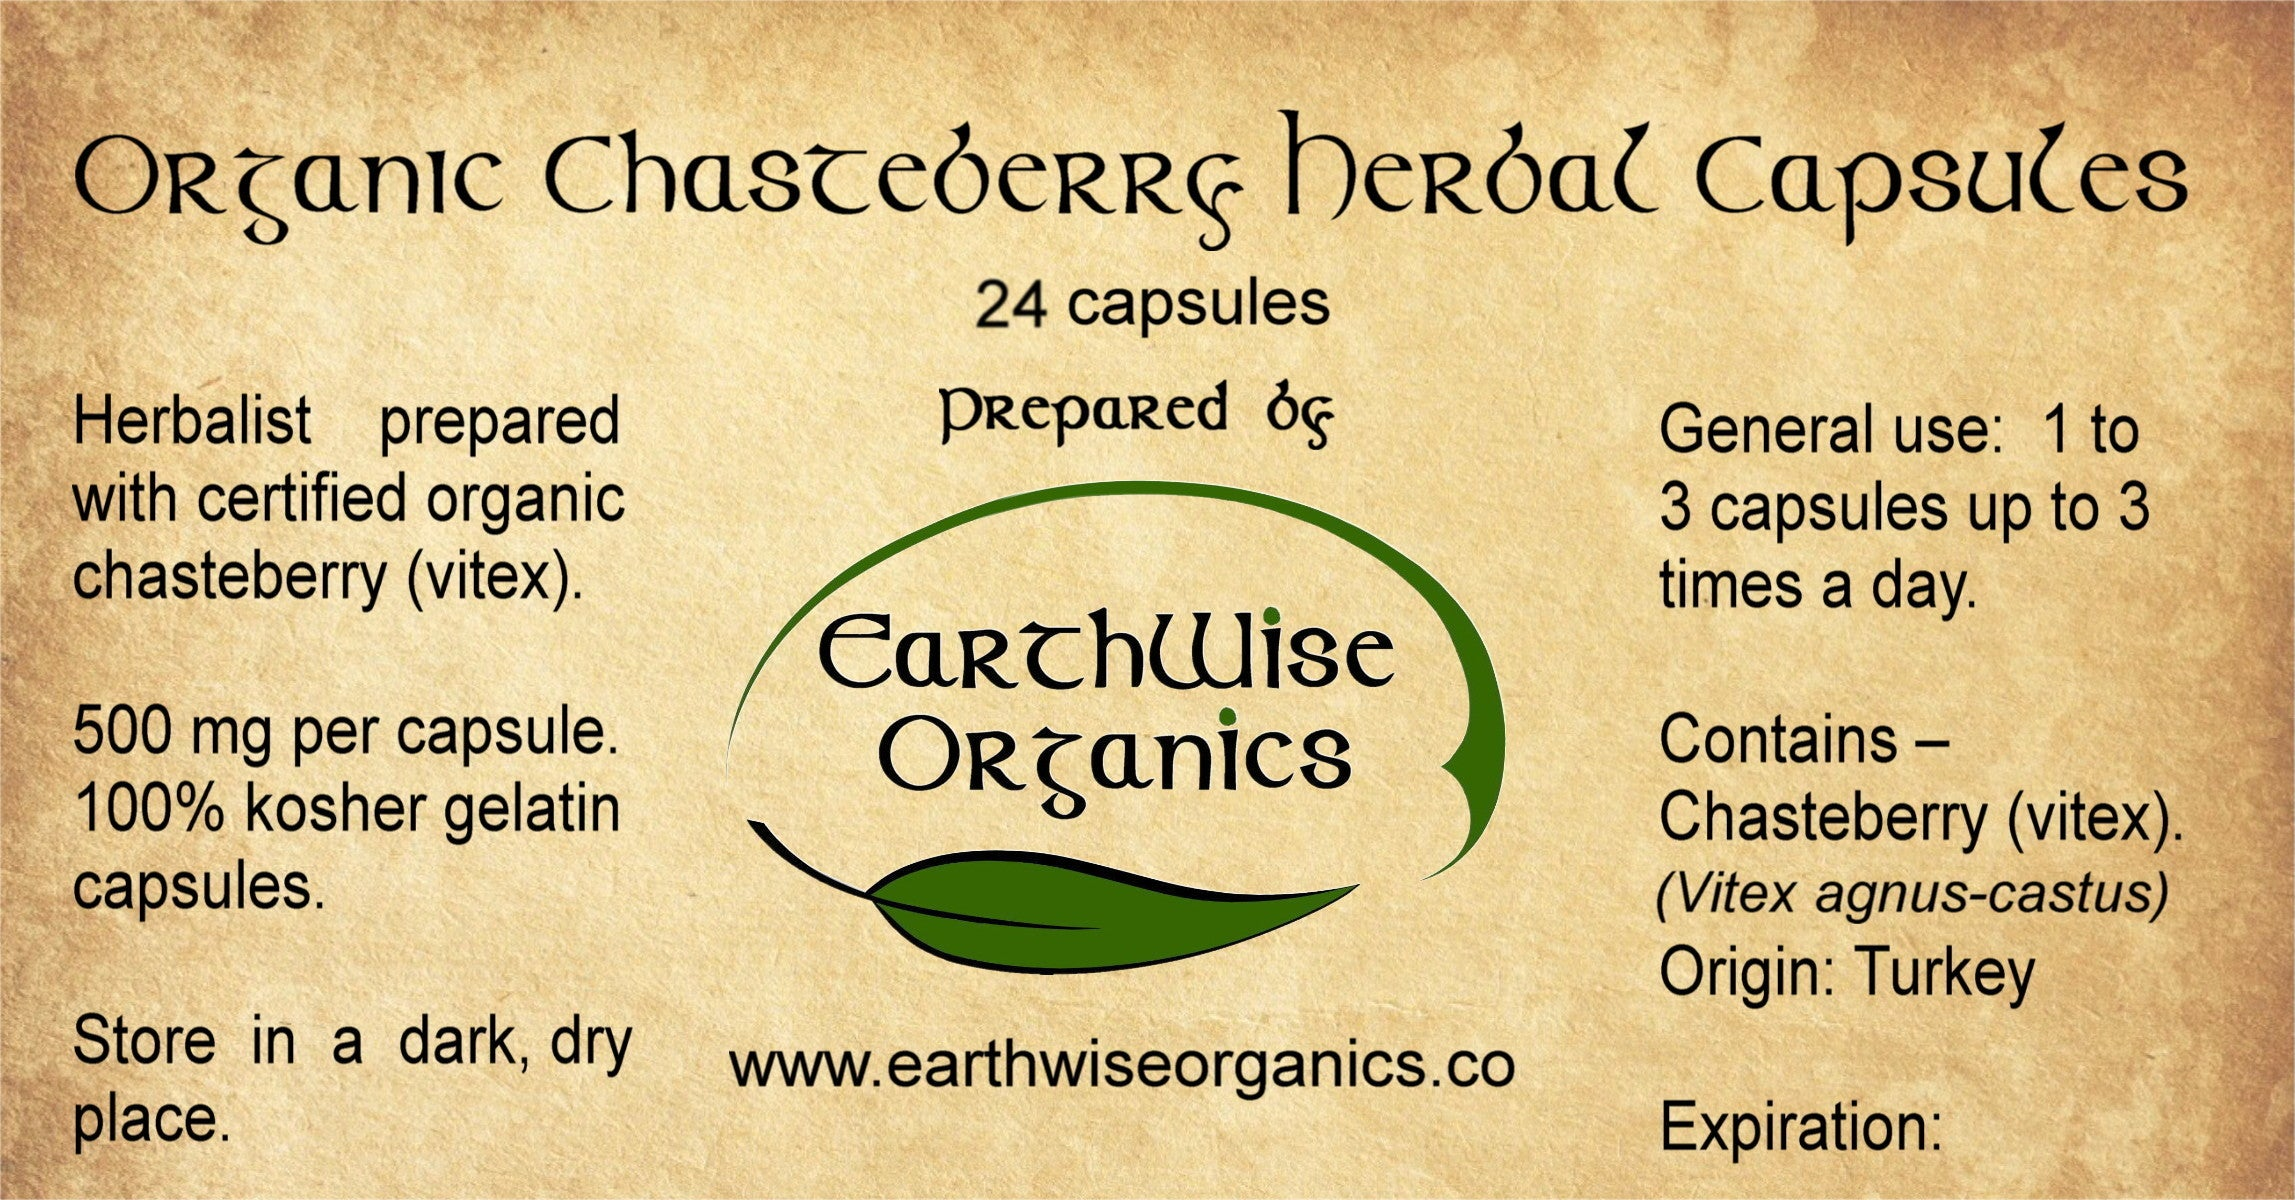 chasteberry organic herbal capsules label